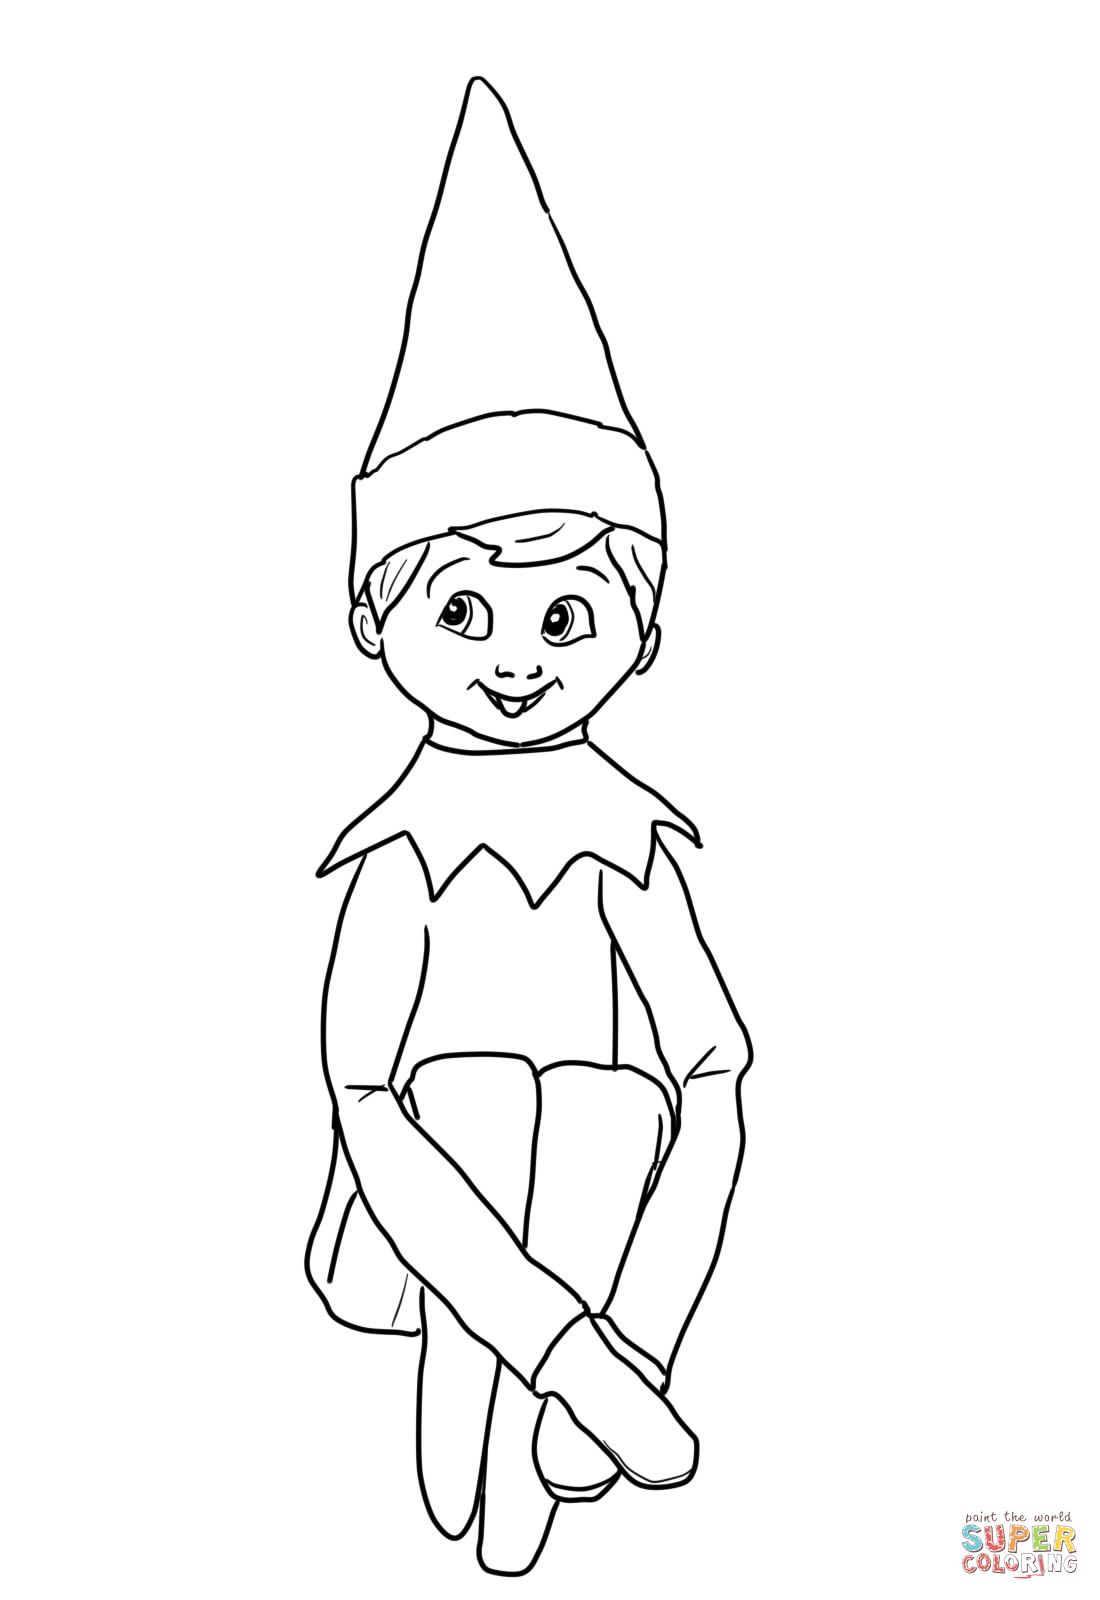 Christmas Coloring Sheets Elf With Girl On The Shelf Pages You Might Also Be Interested